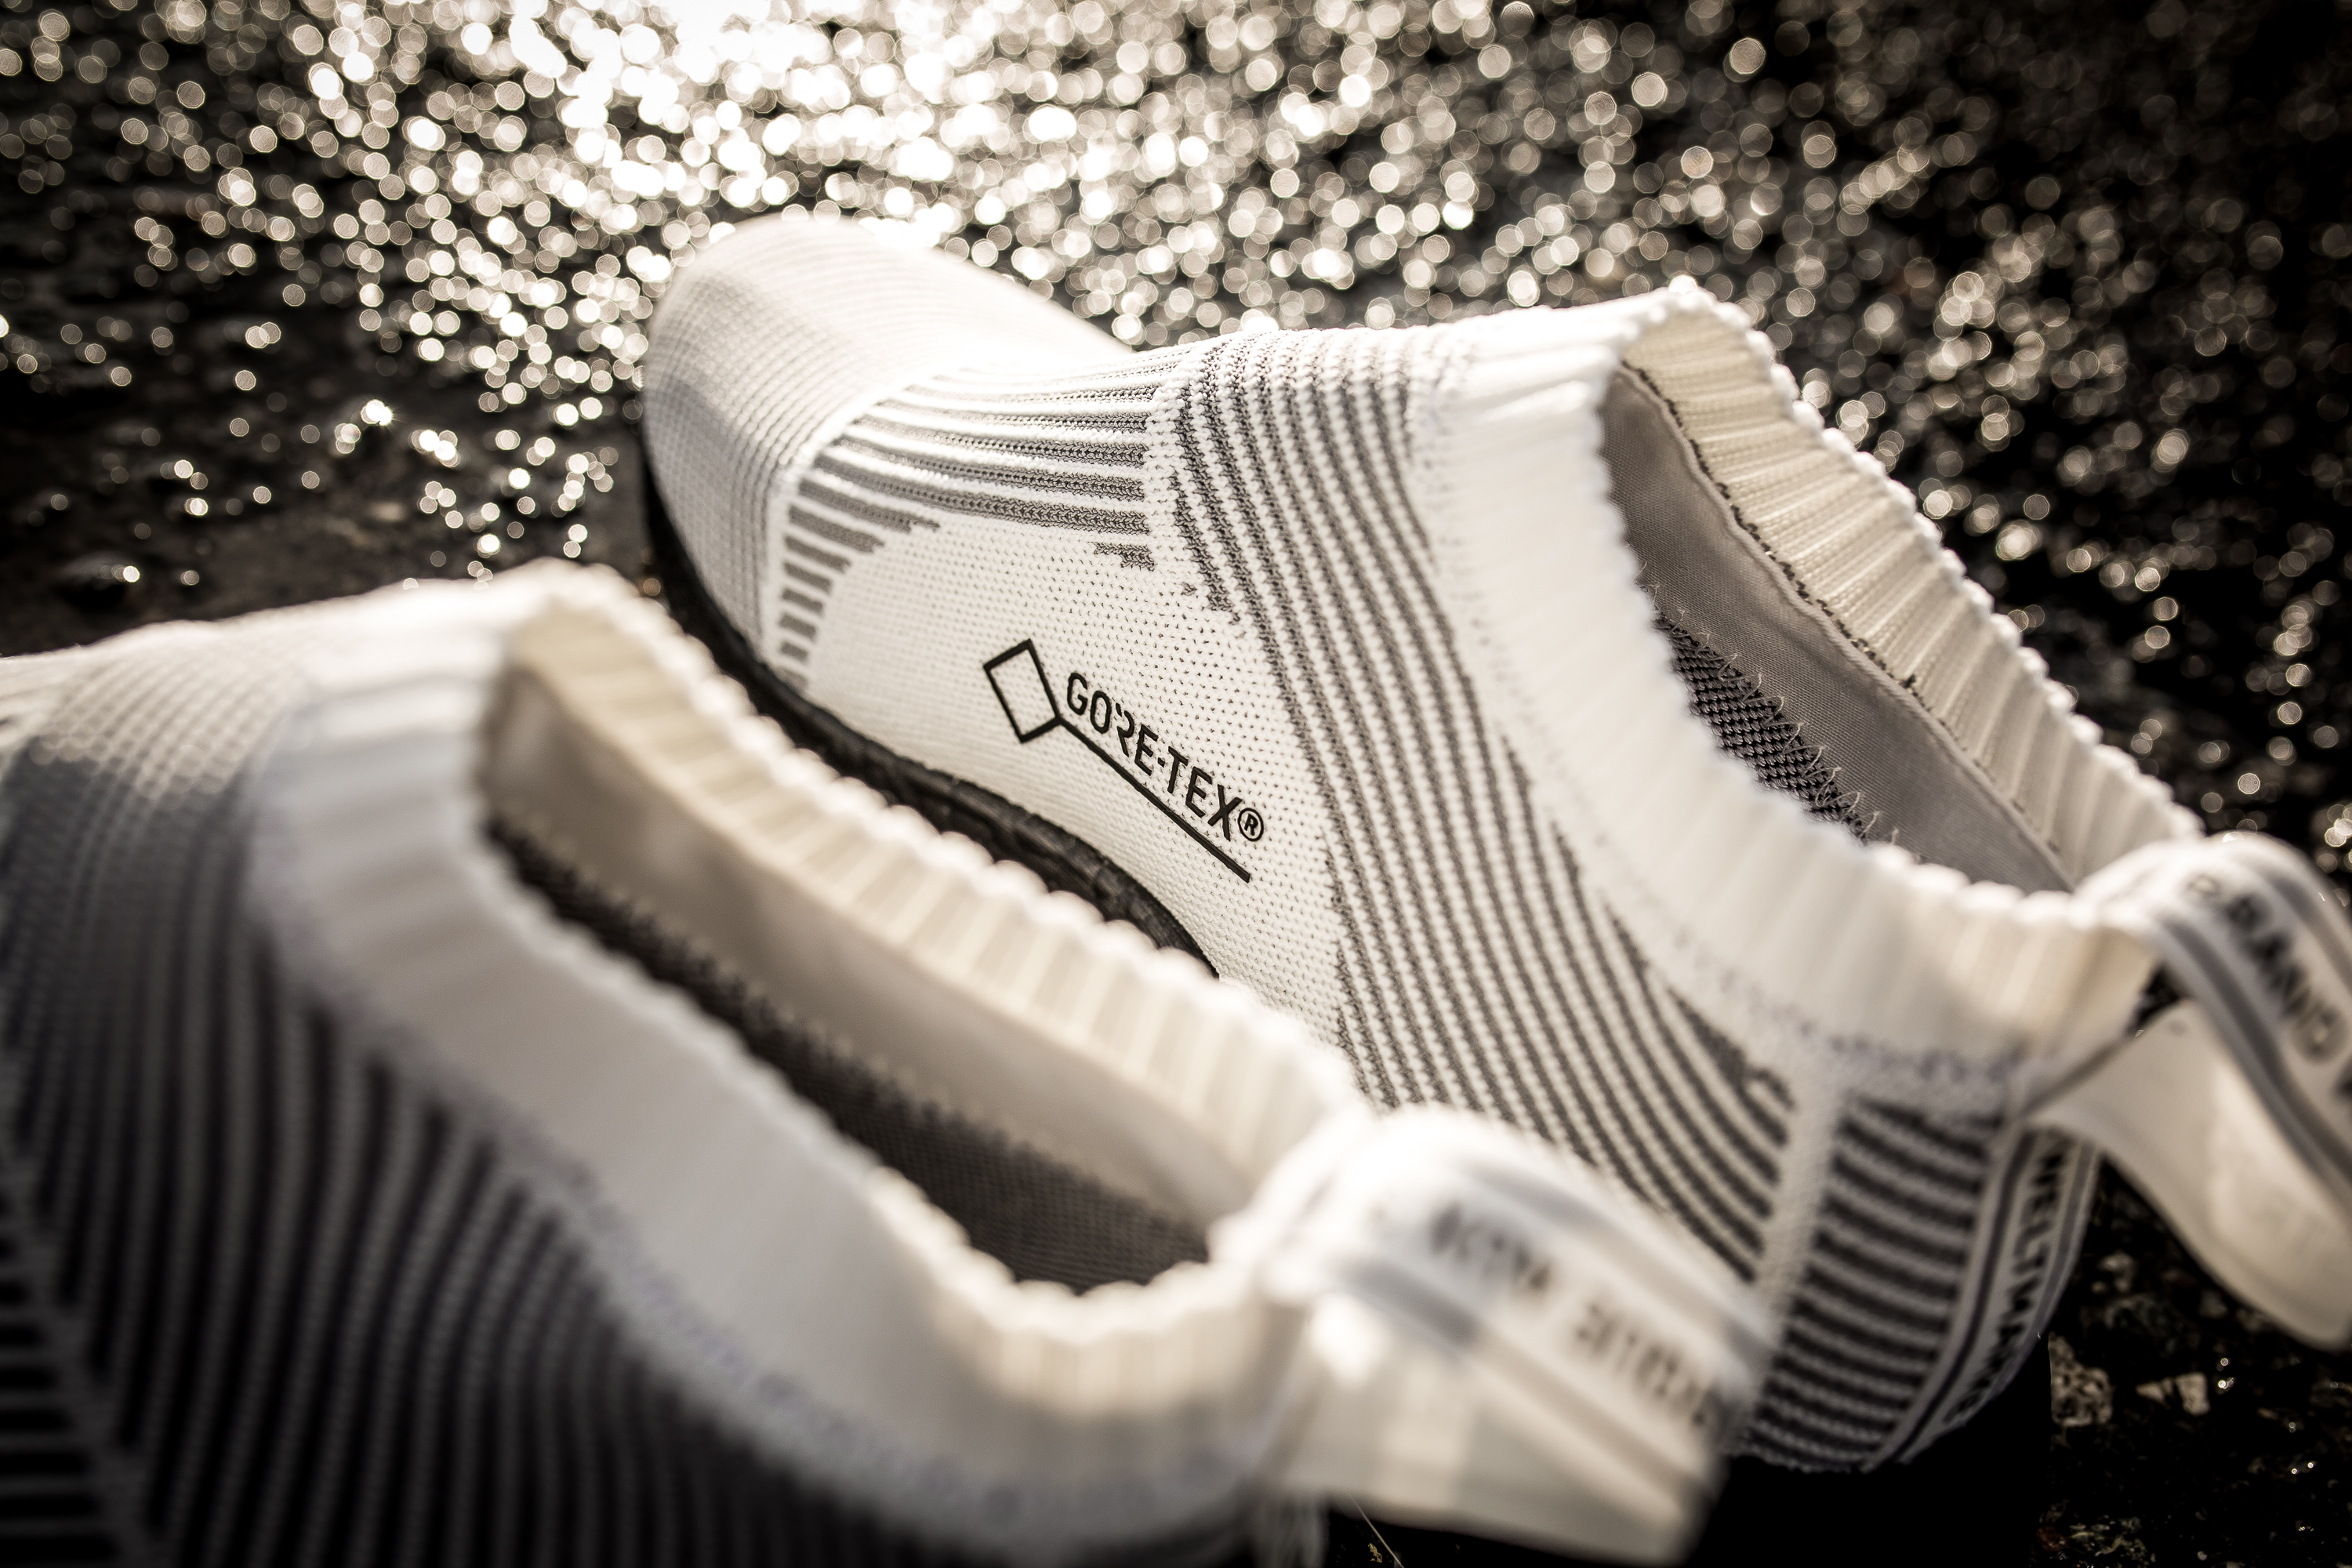 Blacked Striped Adidas Shoes